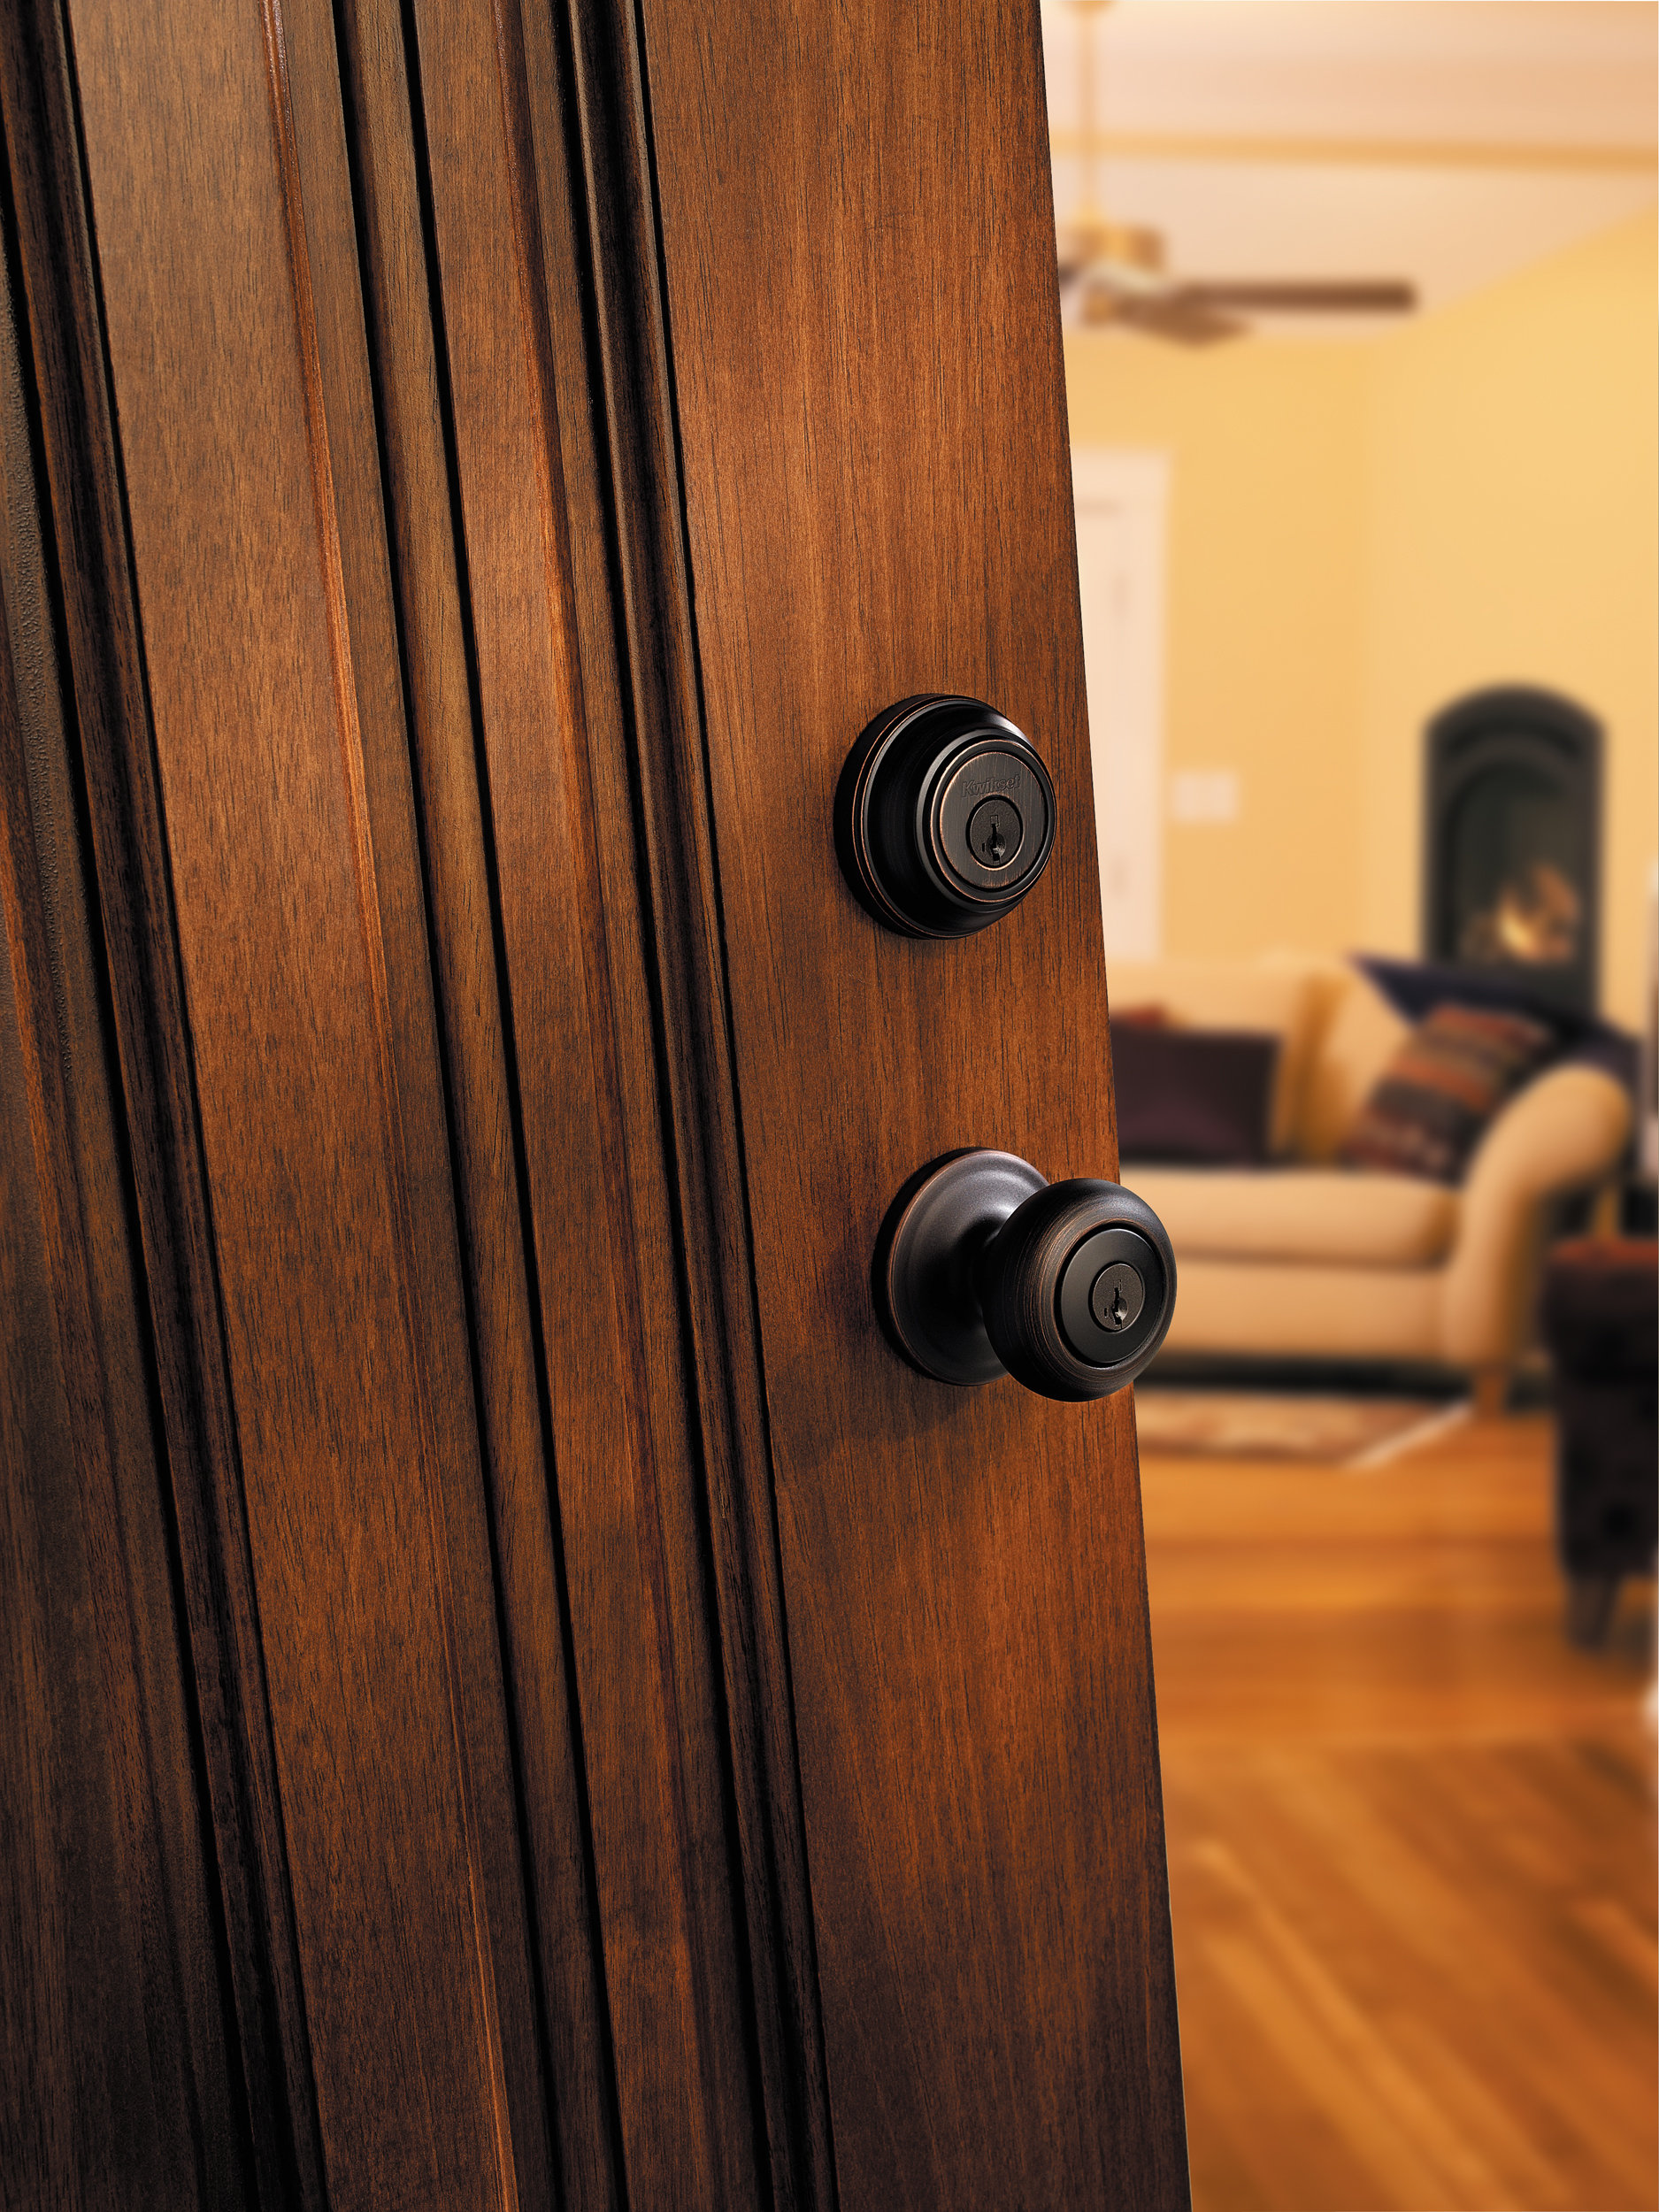 Kwikset 980 Single Cylinder Deadbolt Featuring Smartkey